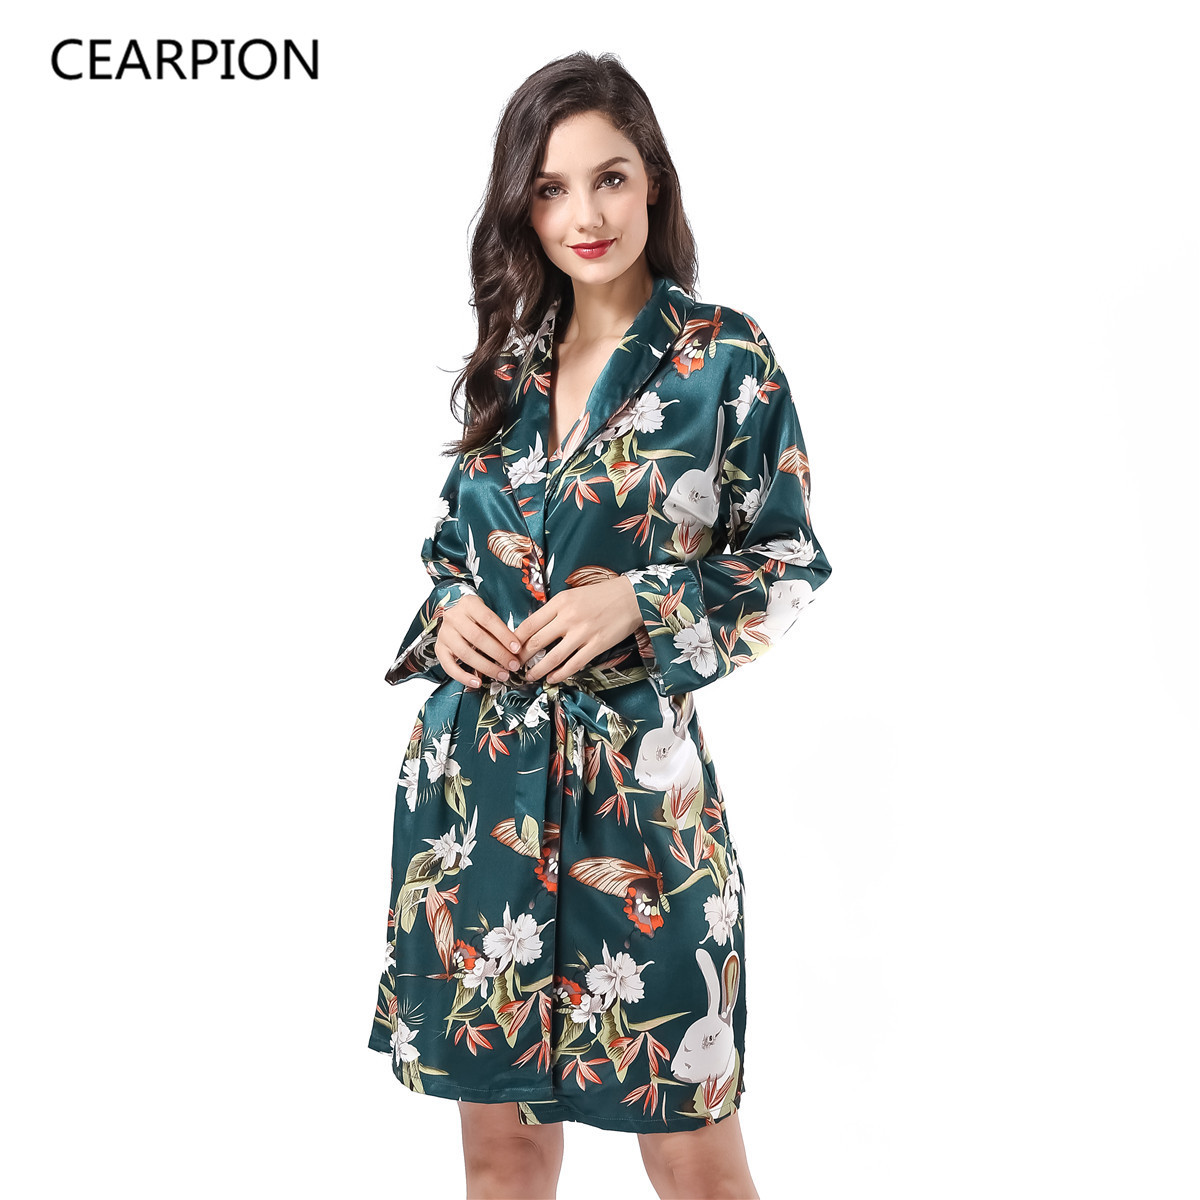 CEARPION Long Sleeve Kimono Bath Robe Gown Print Floral Sleepwear Satin Nightgown Lady Sexy Home Dress Soft Intimate Lingerie